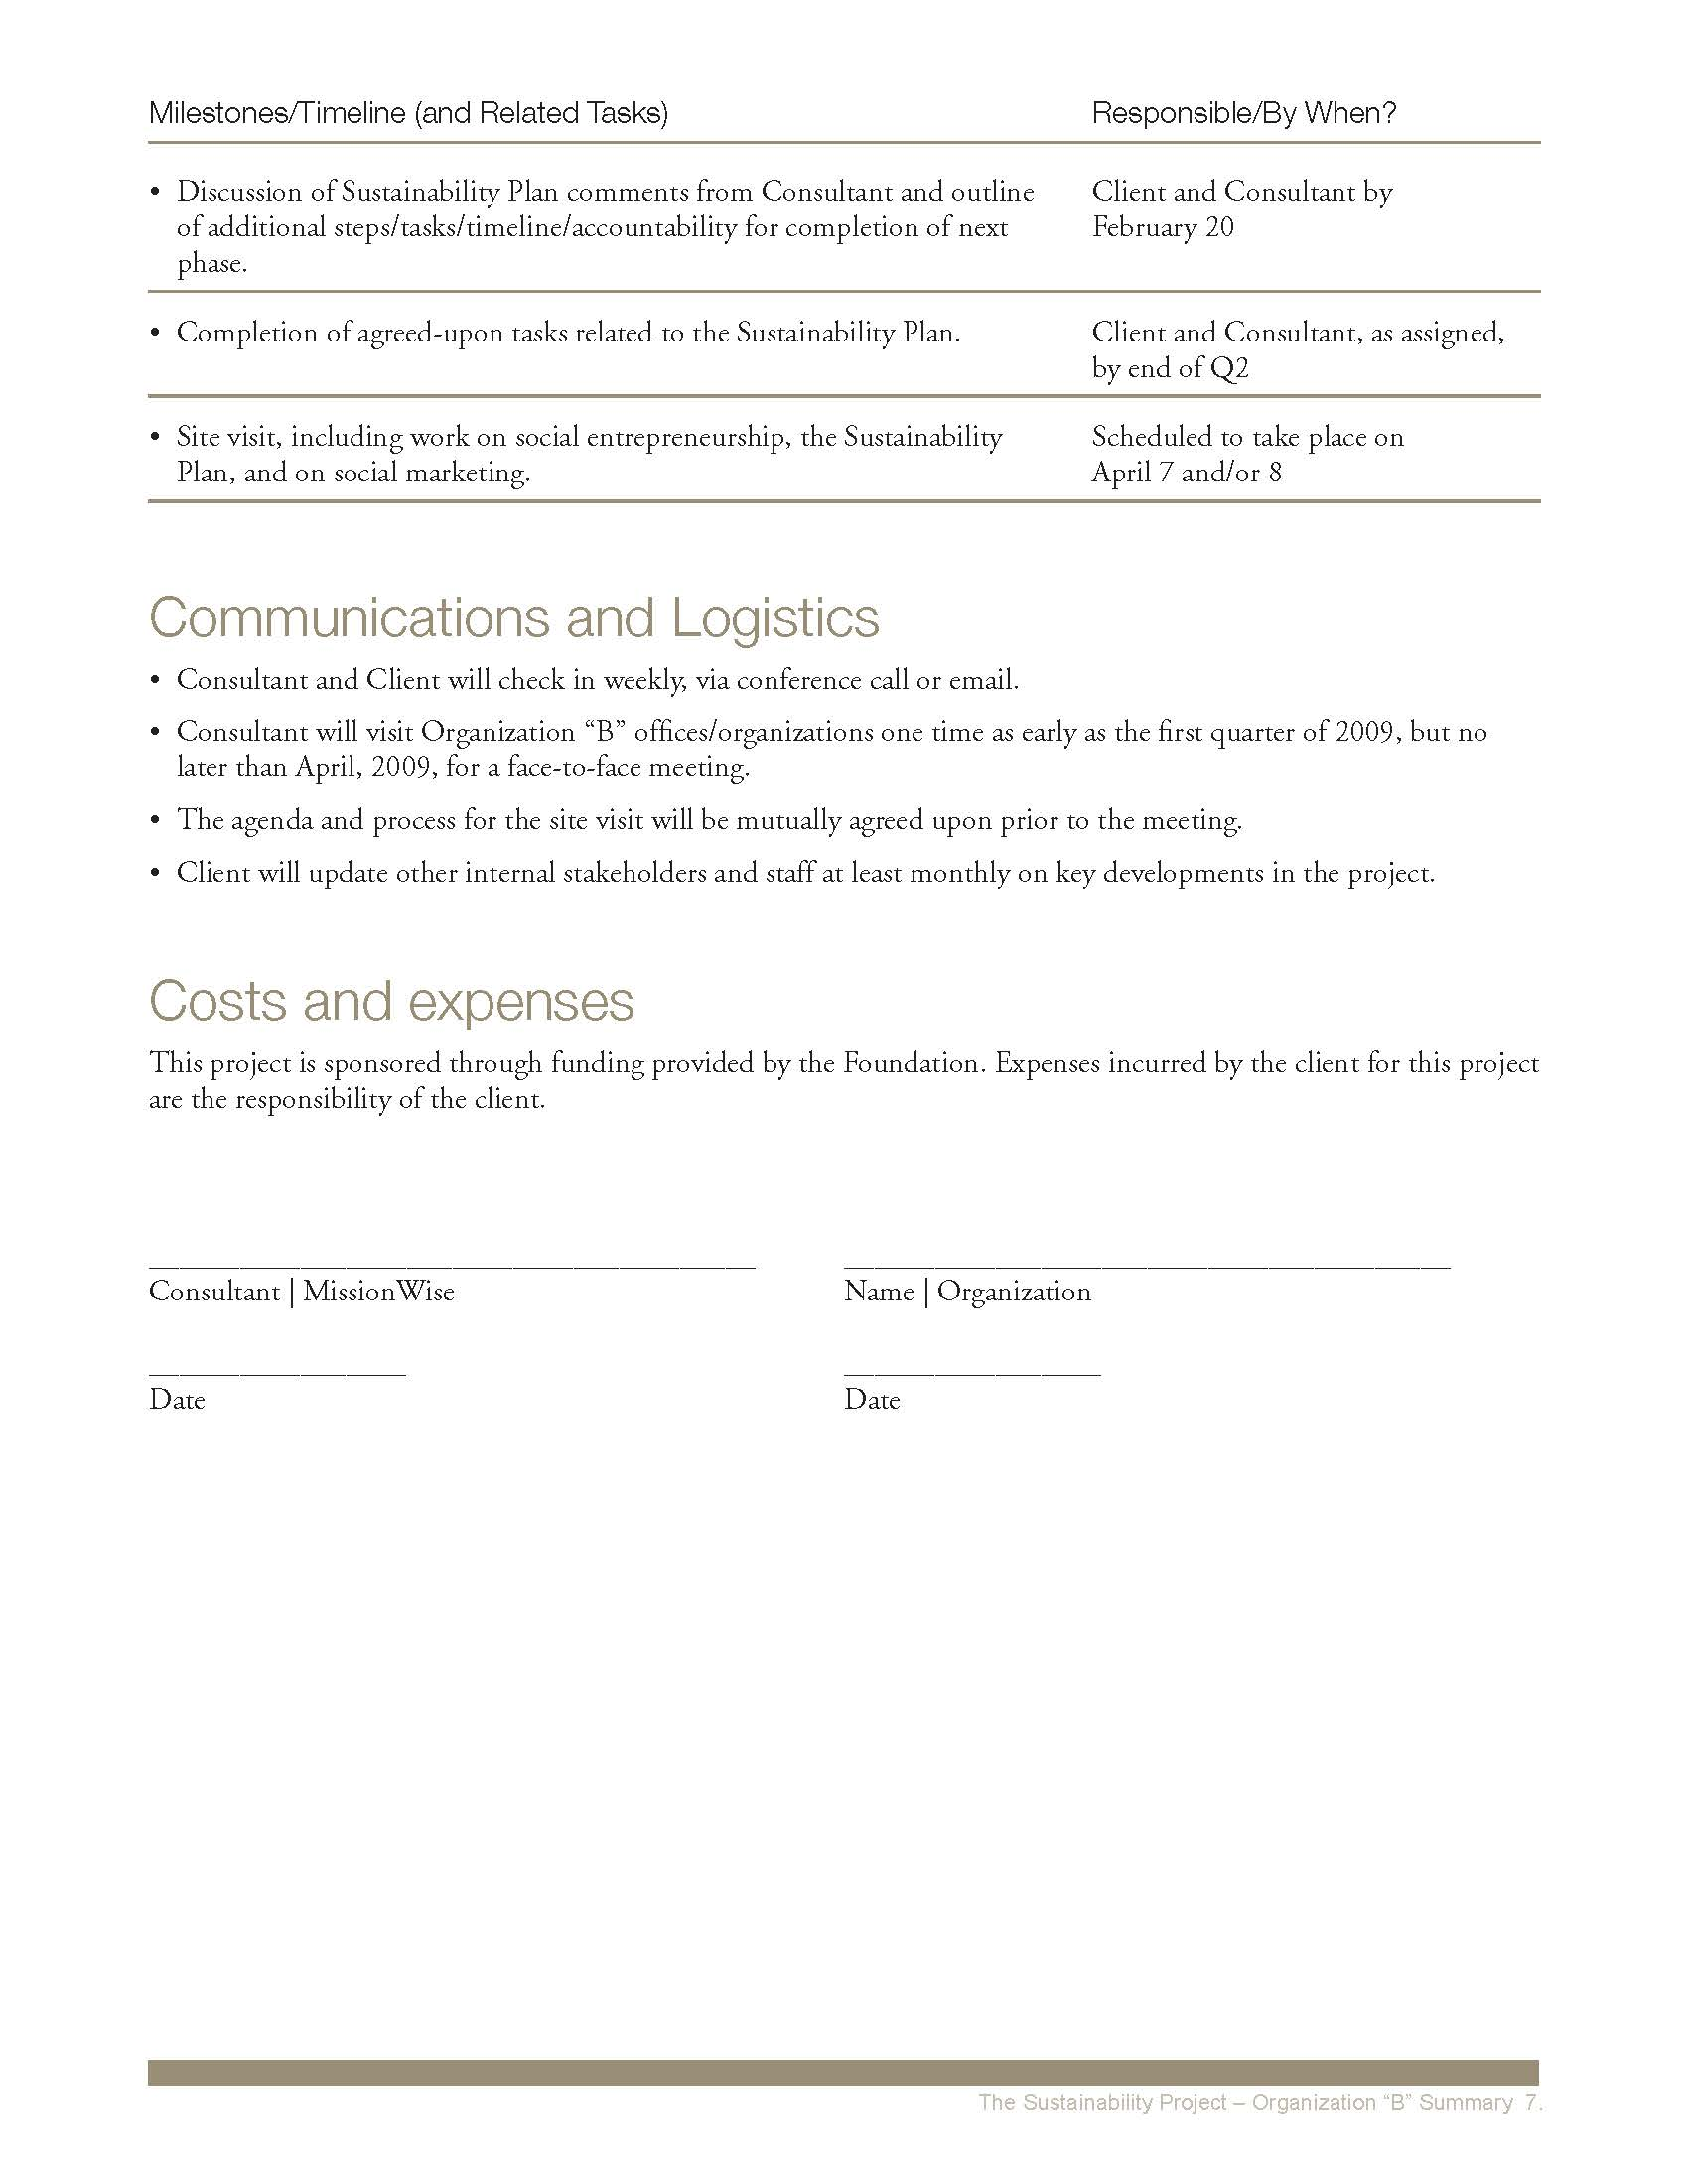 The Sustainability Project_Page_07.jpg